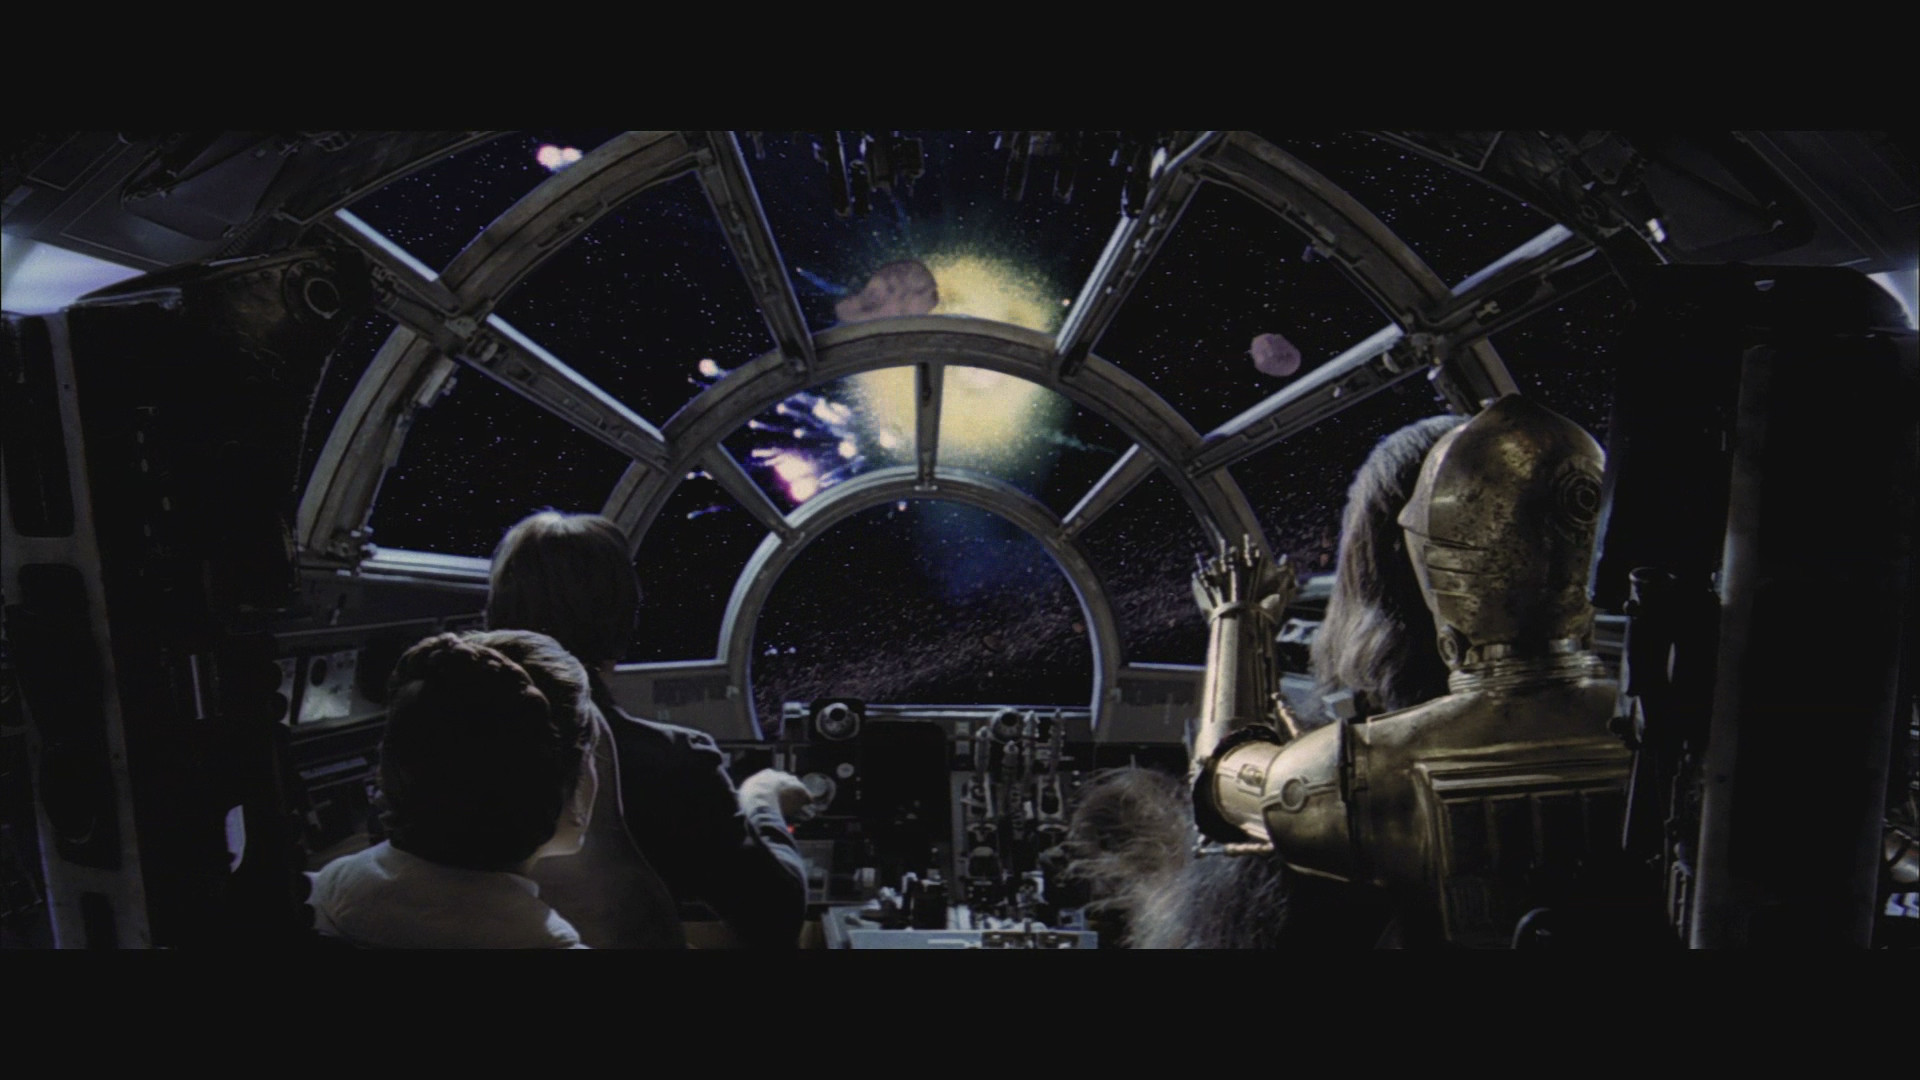 STAR WARS: THE FORCE AWAKENS Millennium Falcon Images Worthy 1920×1080  Millenium Falcon Backgrounds (41 Wallpapers)   Adorable Wallpapers    Pinterest …